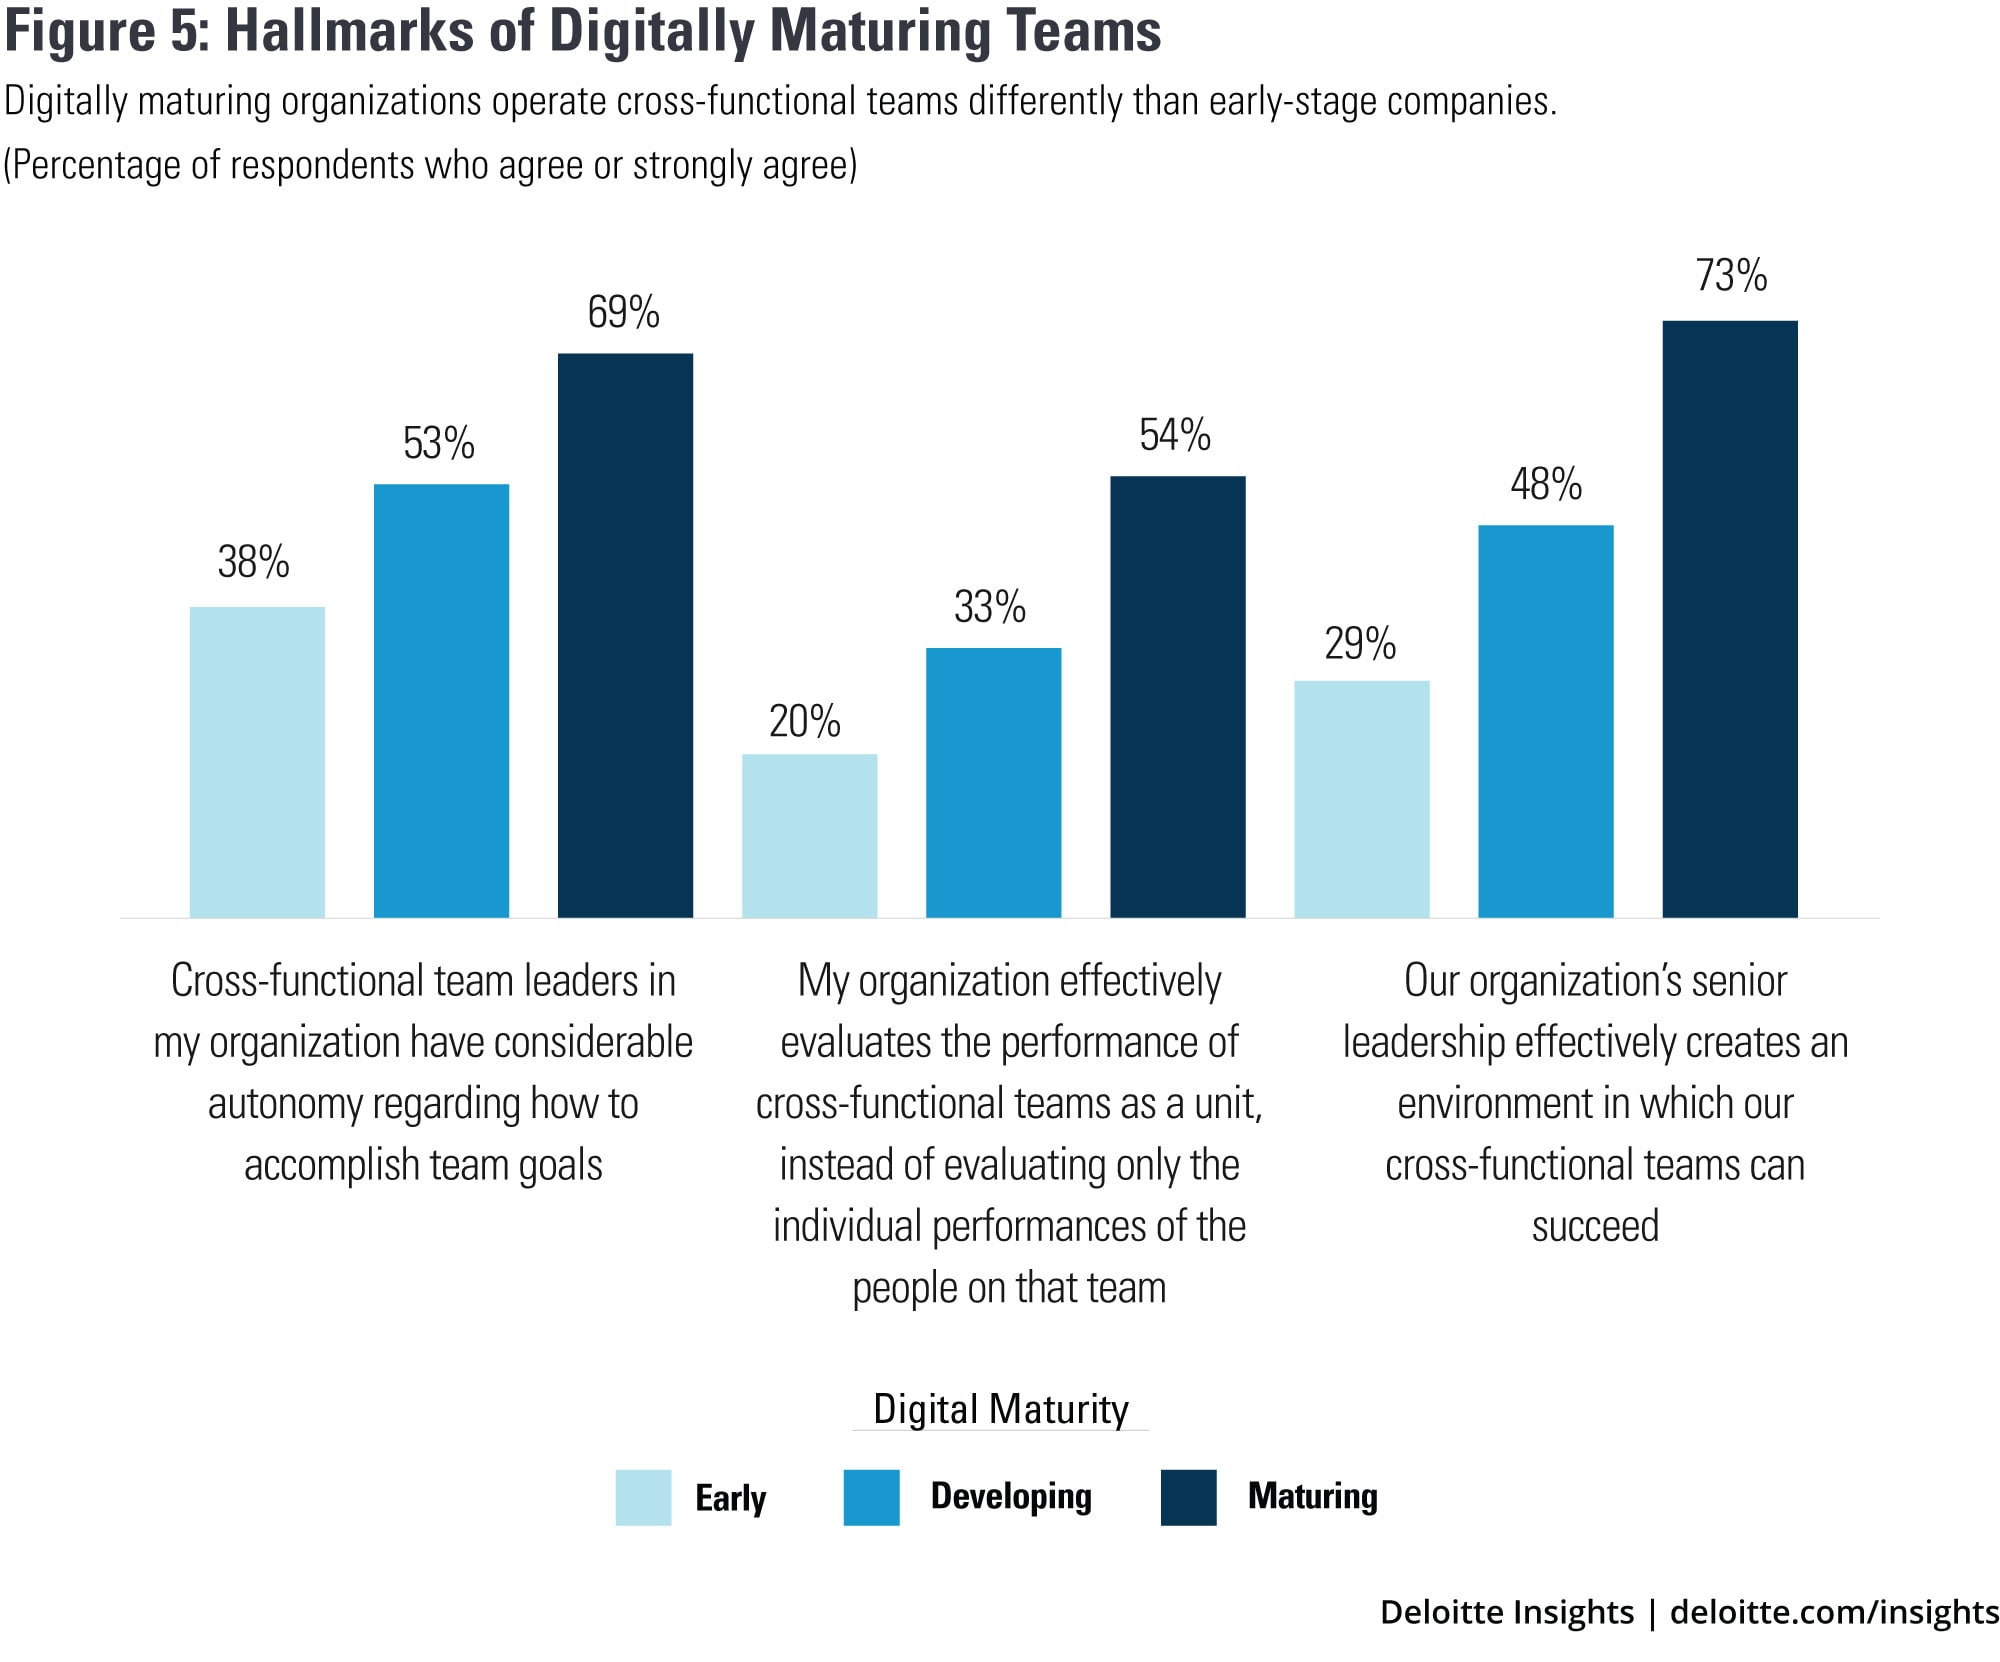 Hallmarks of digitally maturing teams